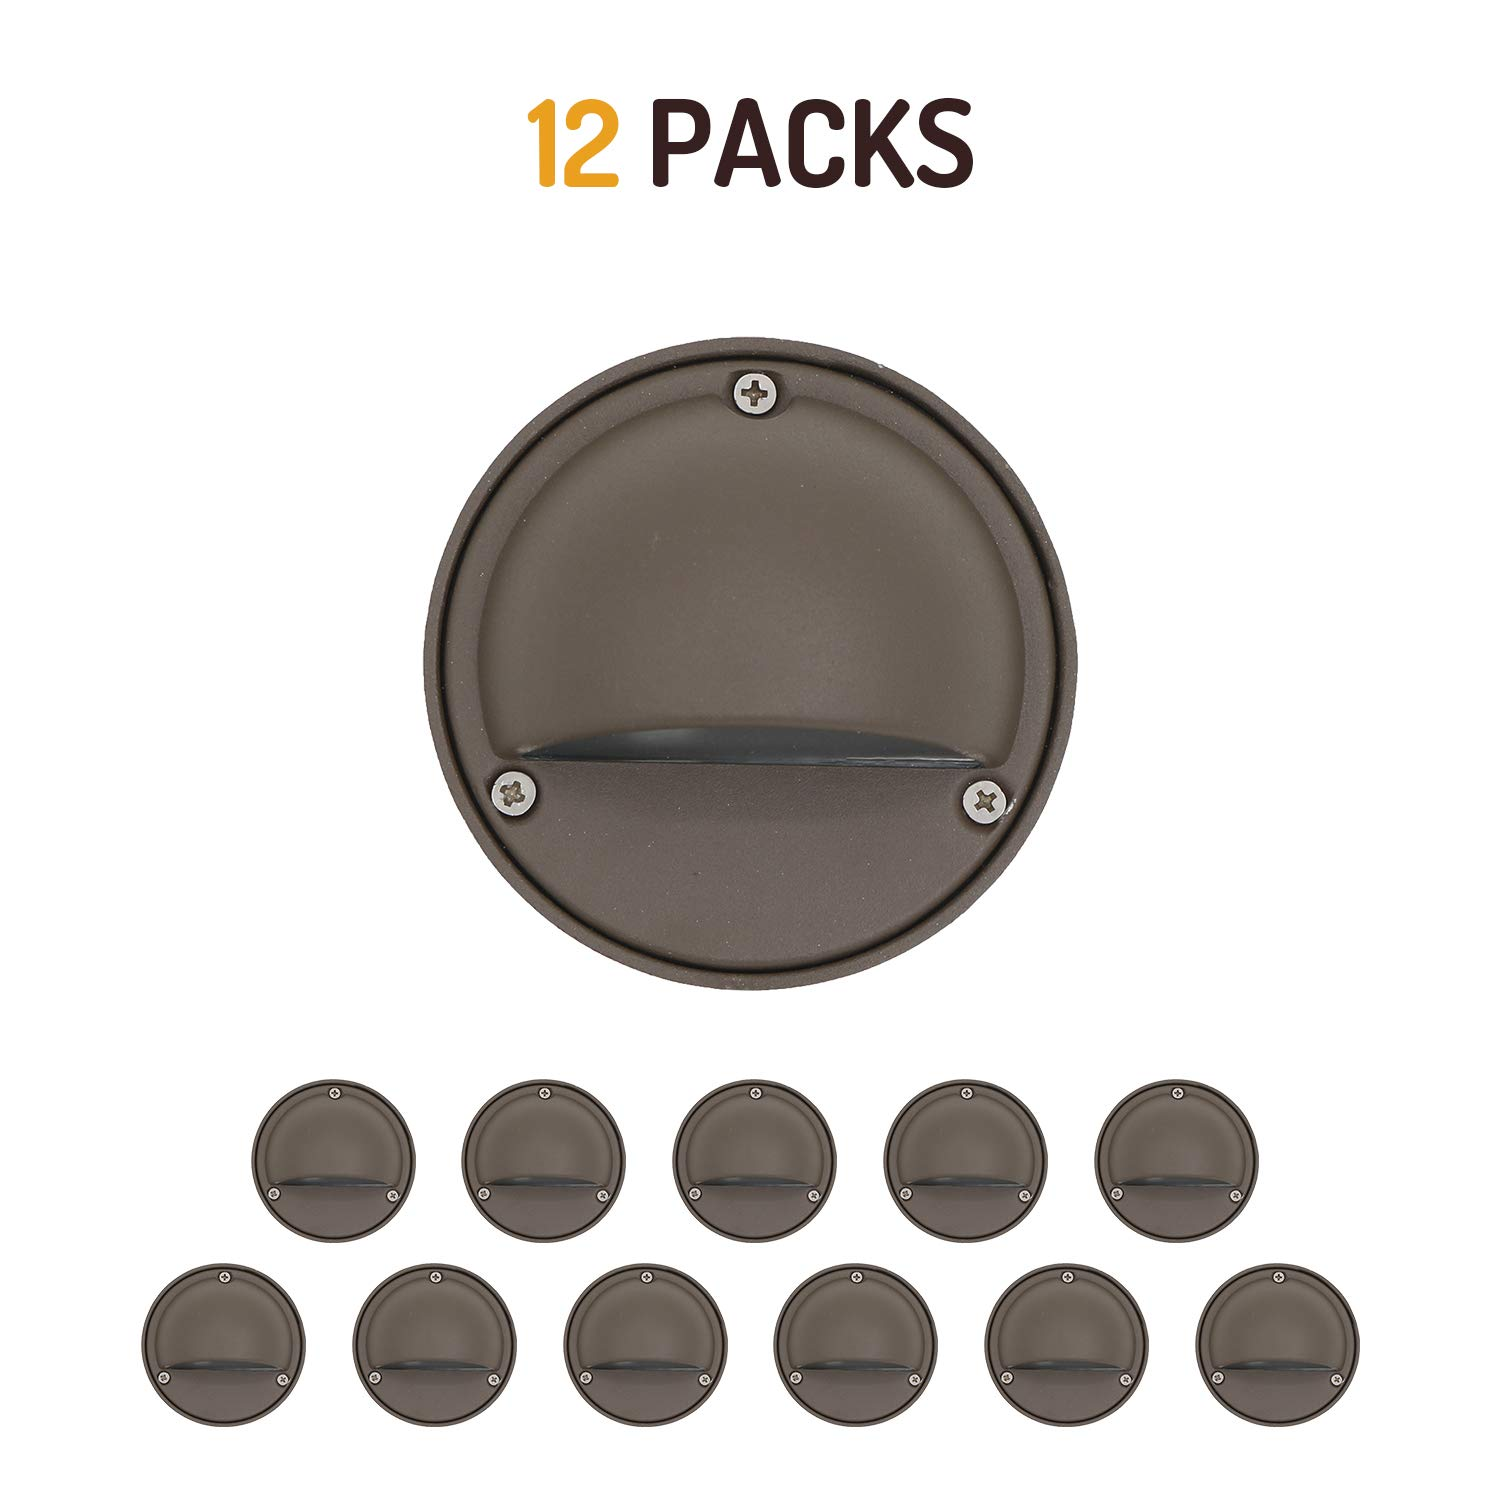 Lumina LED Low Voltage Landscape Lighting Cast-Aluminum Deck and Step Light Warm White 2W G4 LED Bulb Included Garden Yard Decoration Lights for Stair Pathway Bronze Finish DSL0101-BZLED12 (12PK)